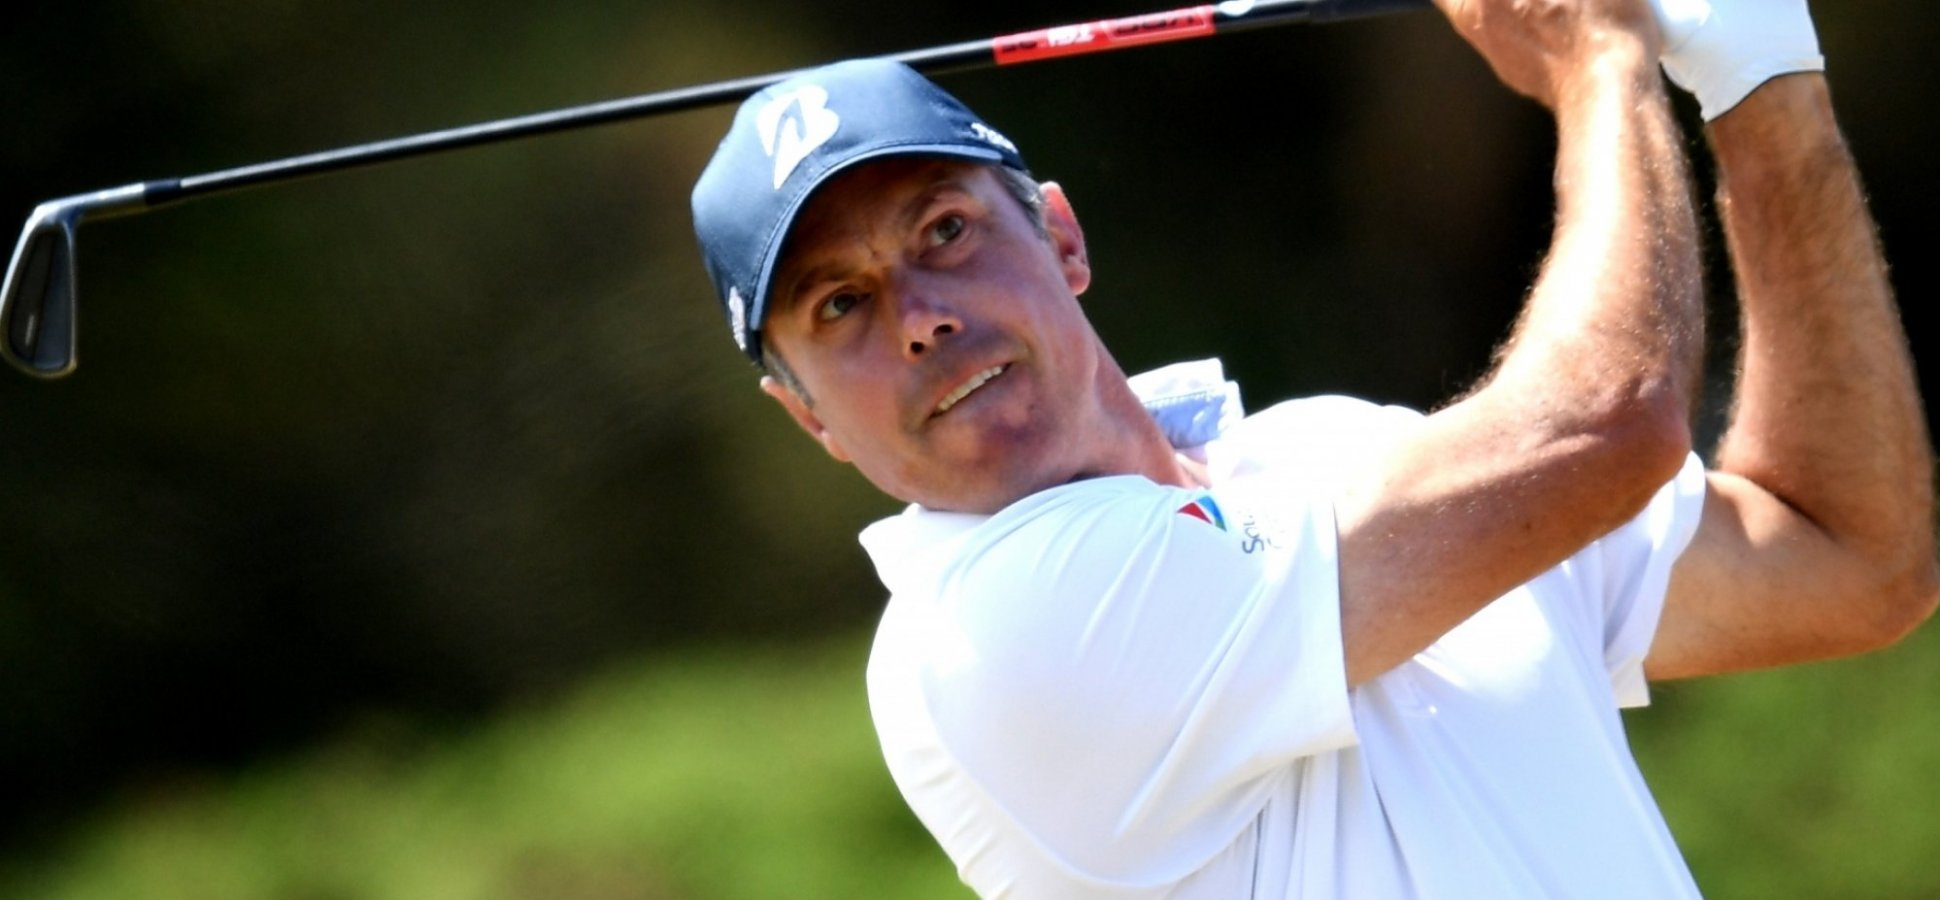 Hey Matt Kuchar, I Once Caddied For a Tour Pro Who Did Well. You'll Never Guess What I Got Paid